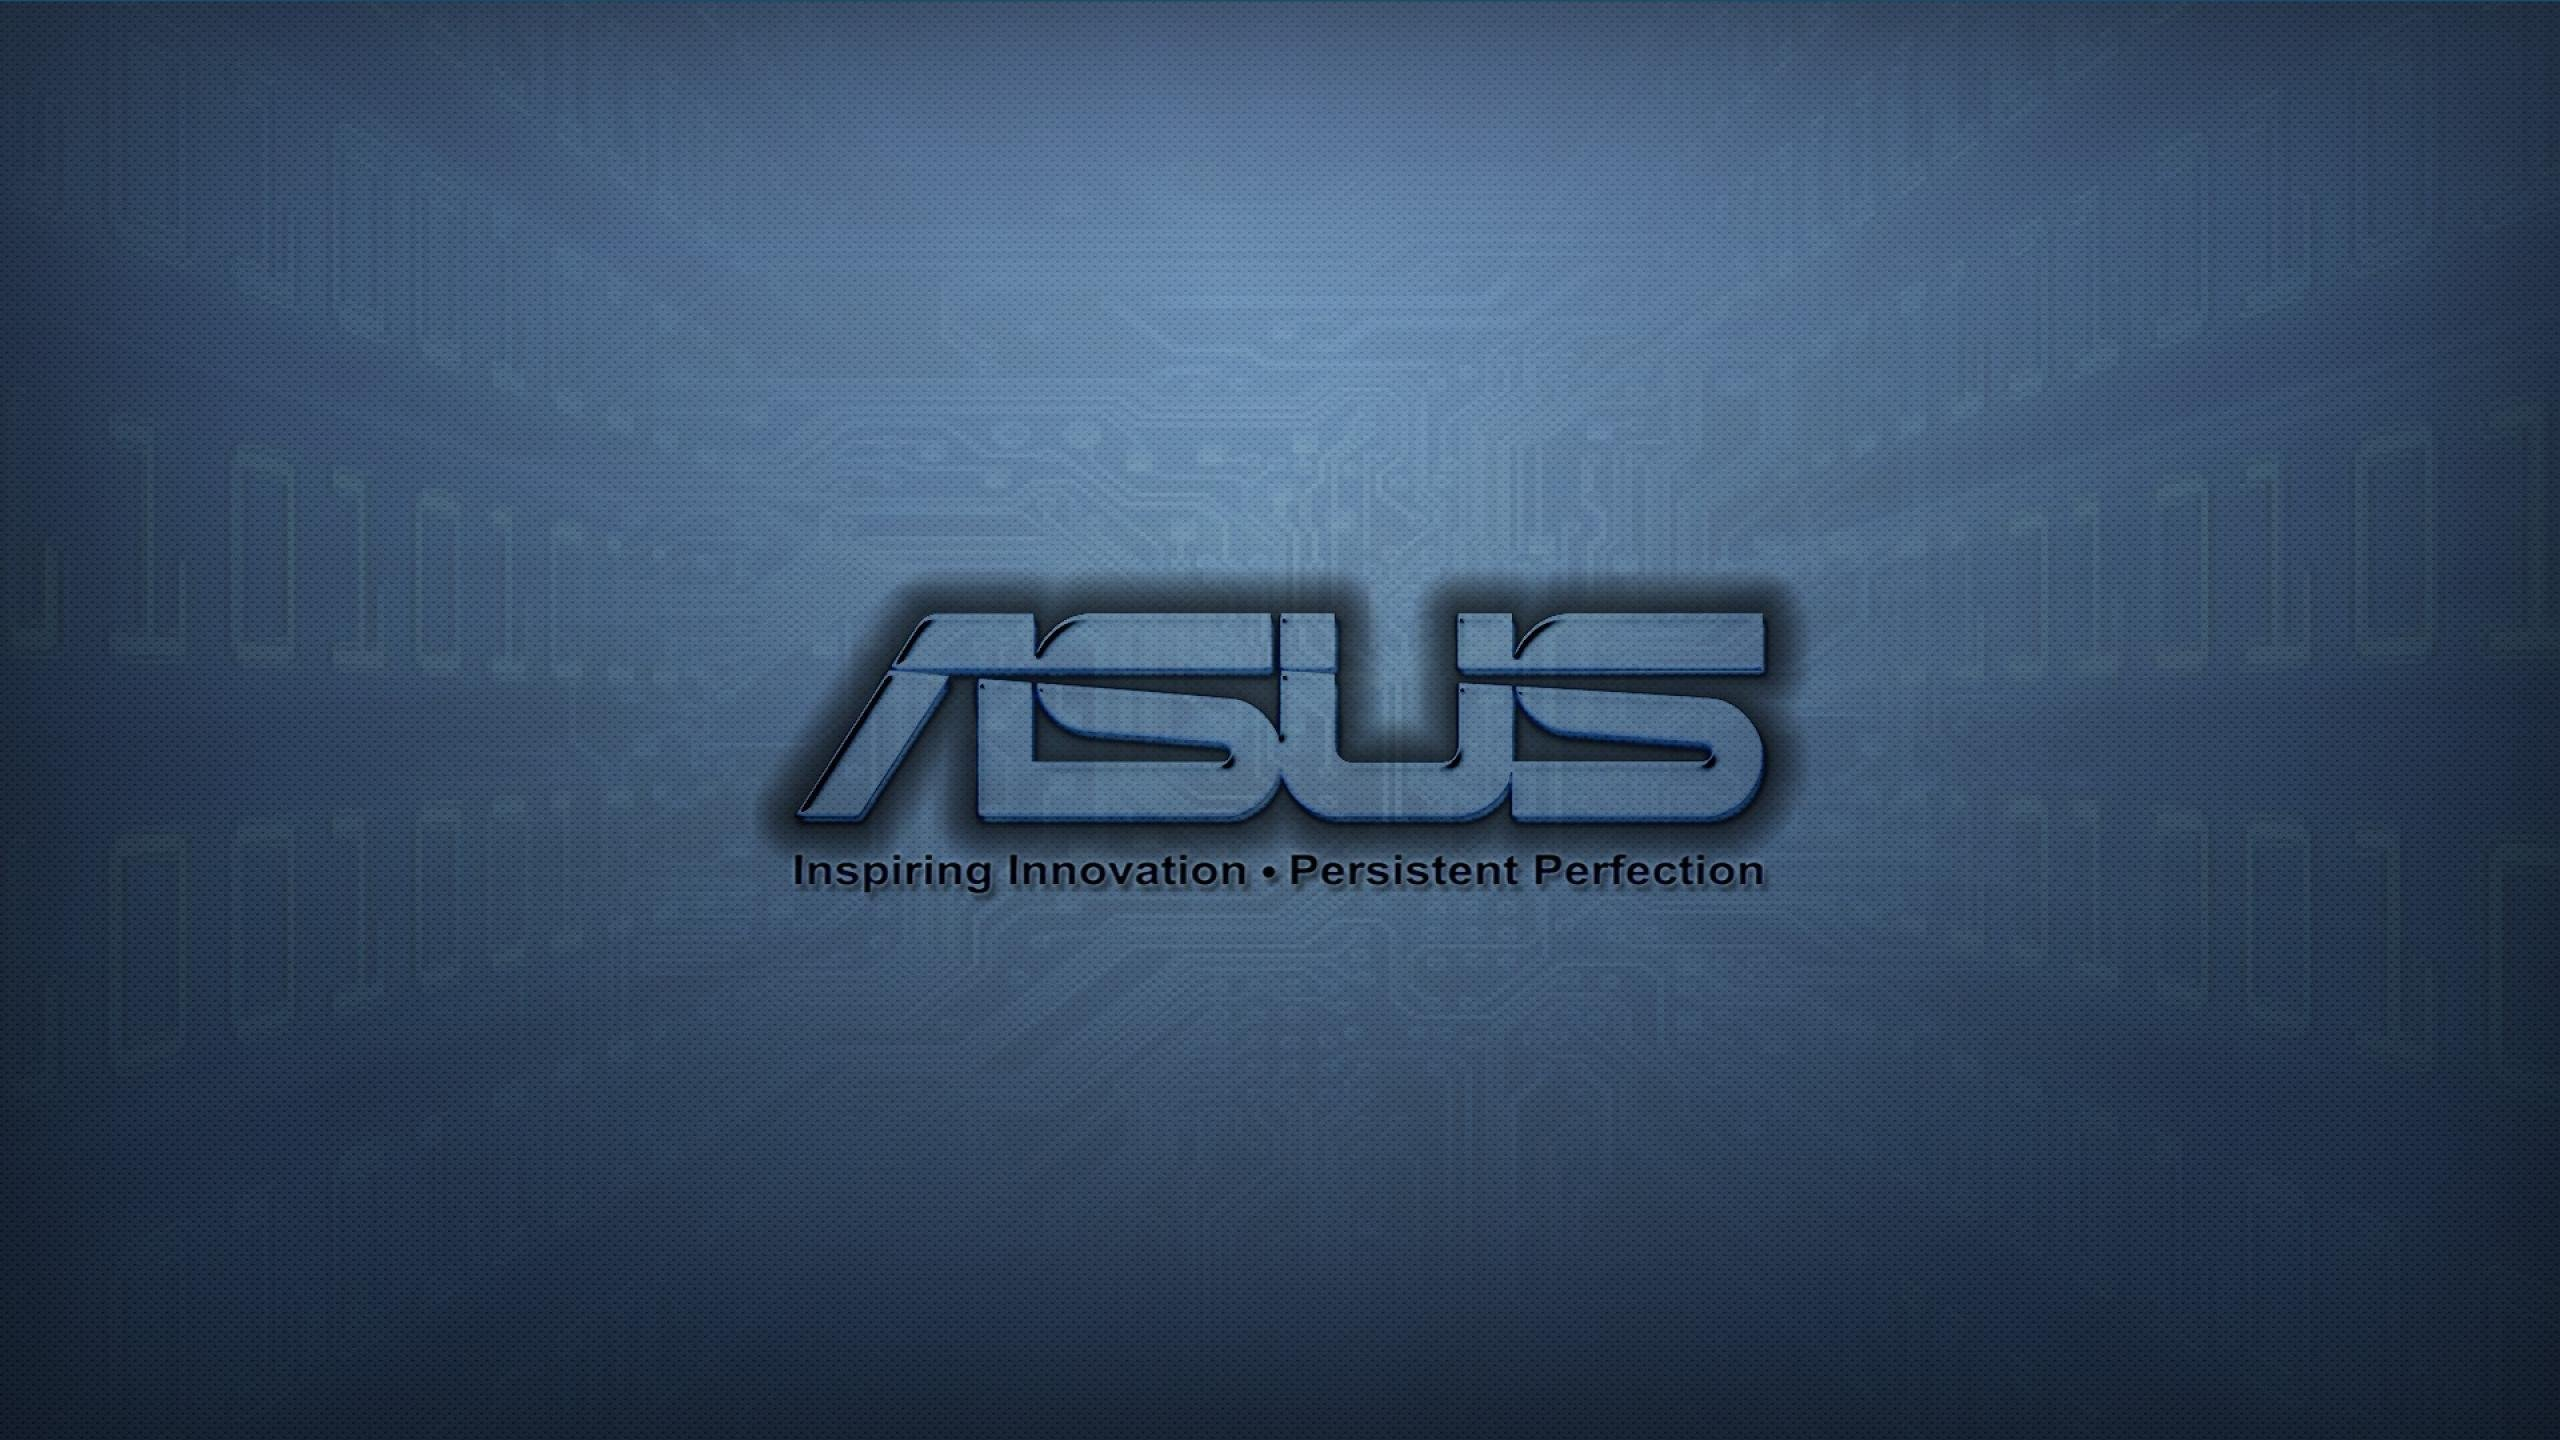 Asus HD Backgrounds For 2560x1440 Desktop